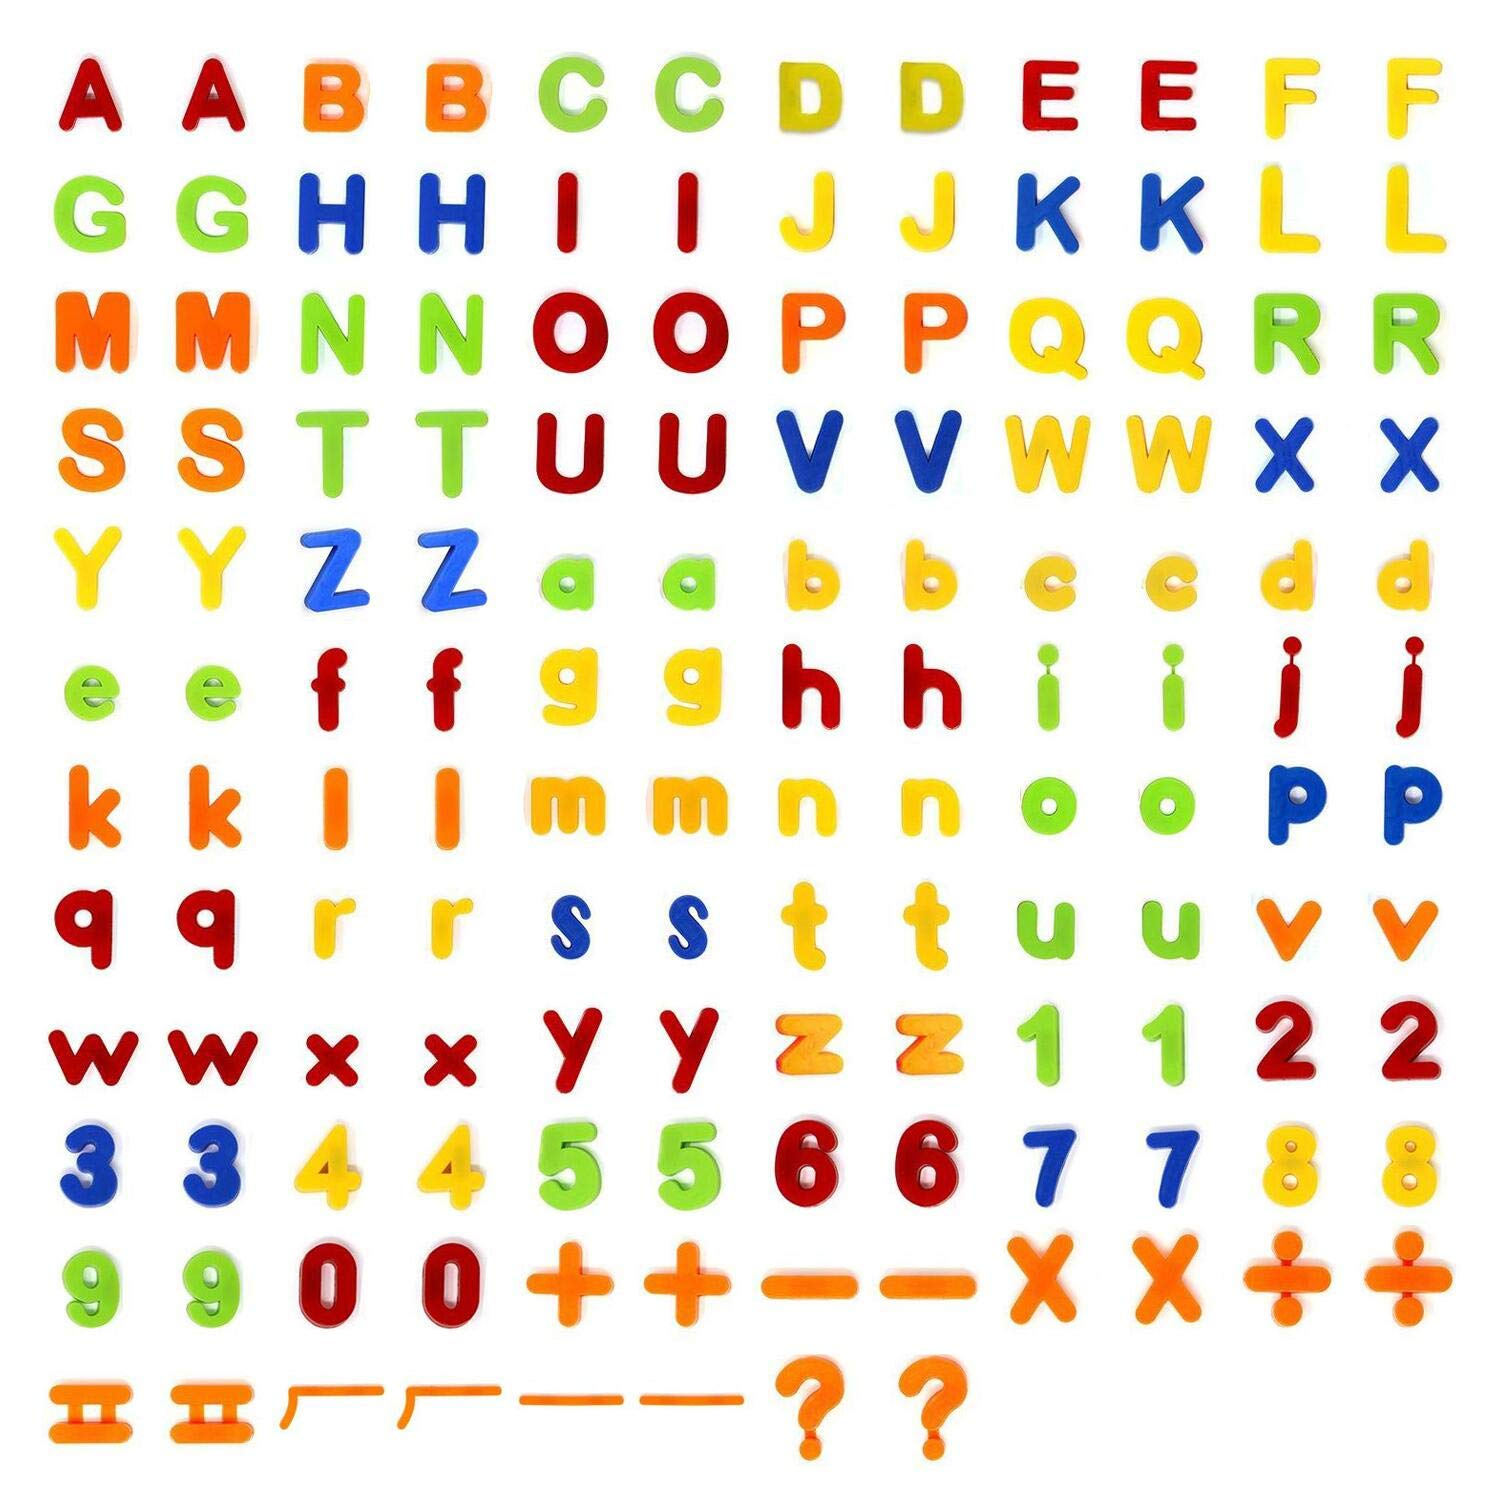 160Pcs Magnetic Letters Alphabet Numbers Learning Toy for Learning, Spelling, Counting, Including 52pcs Upper Case Letters, 52pcs Lower Case Letters, 40pcs Magnetic Numbers and 16pcs Symbols CHUN1006